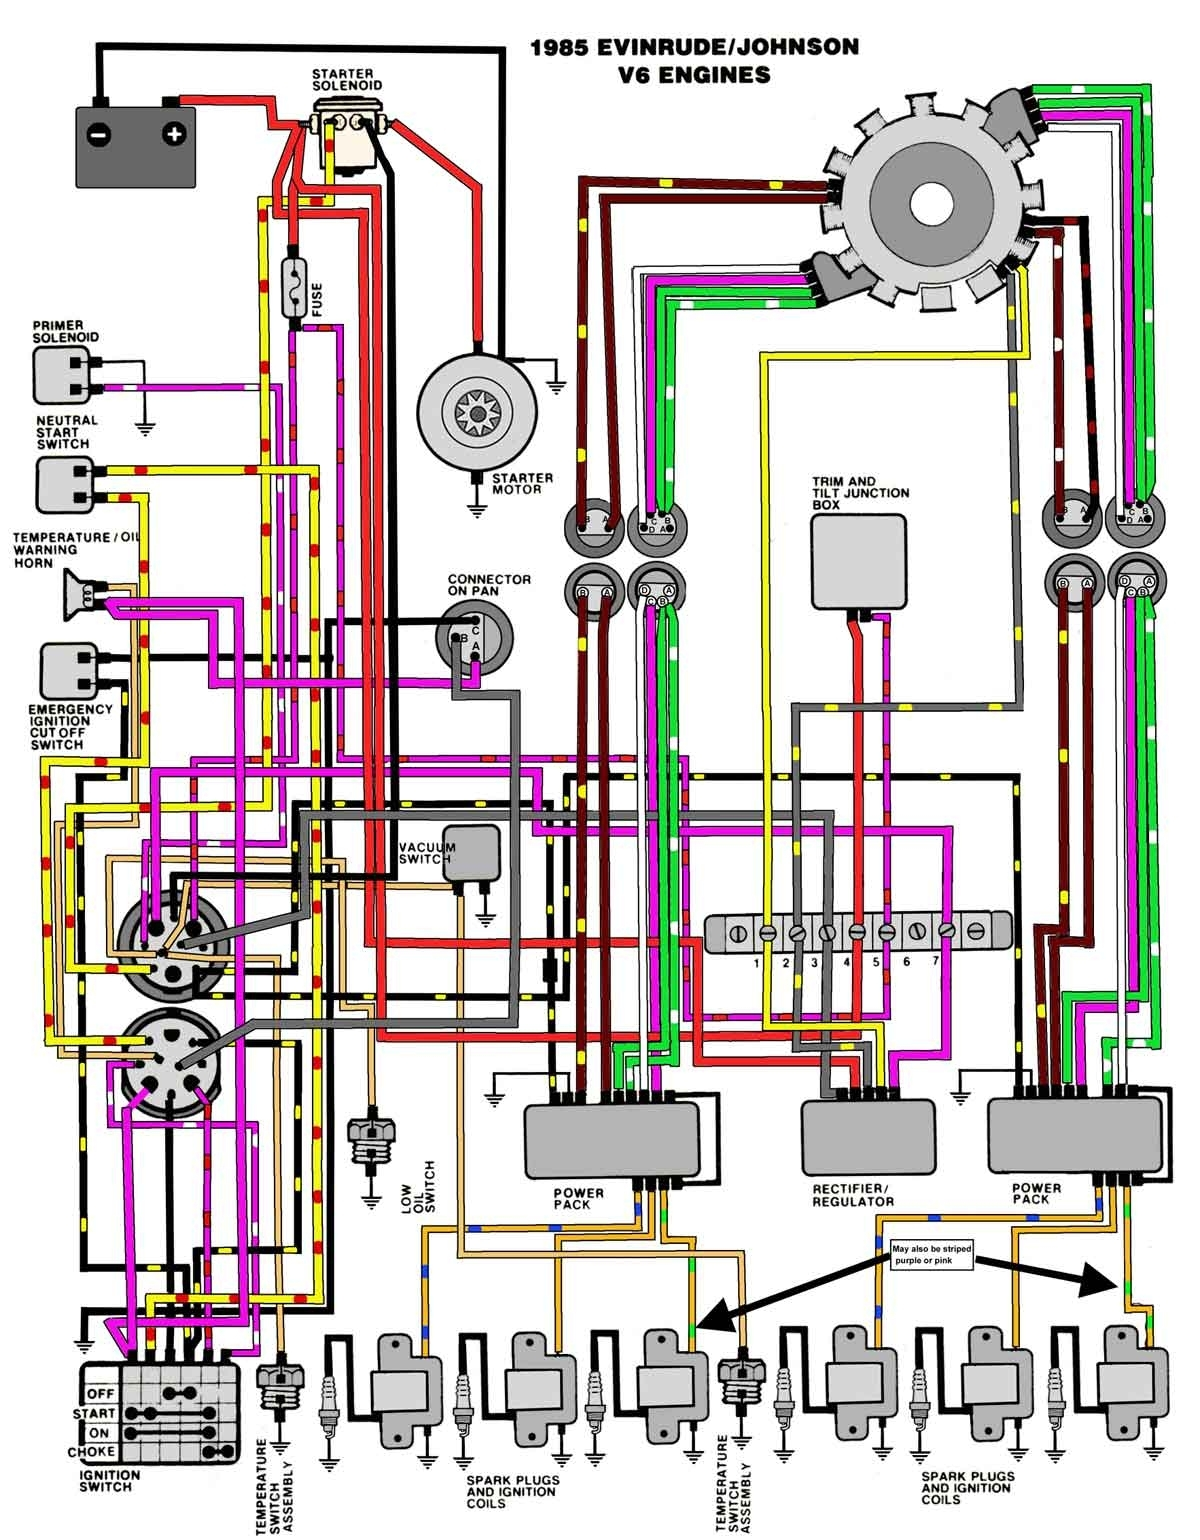 50 Hp Johnson Outboard Wiring Diagram Pdf from i1.wp.com